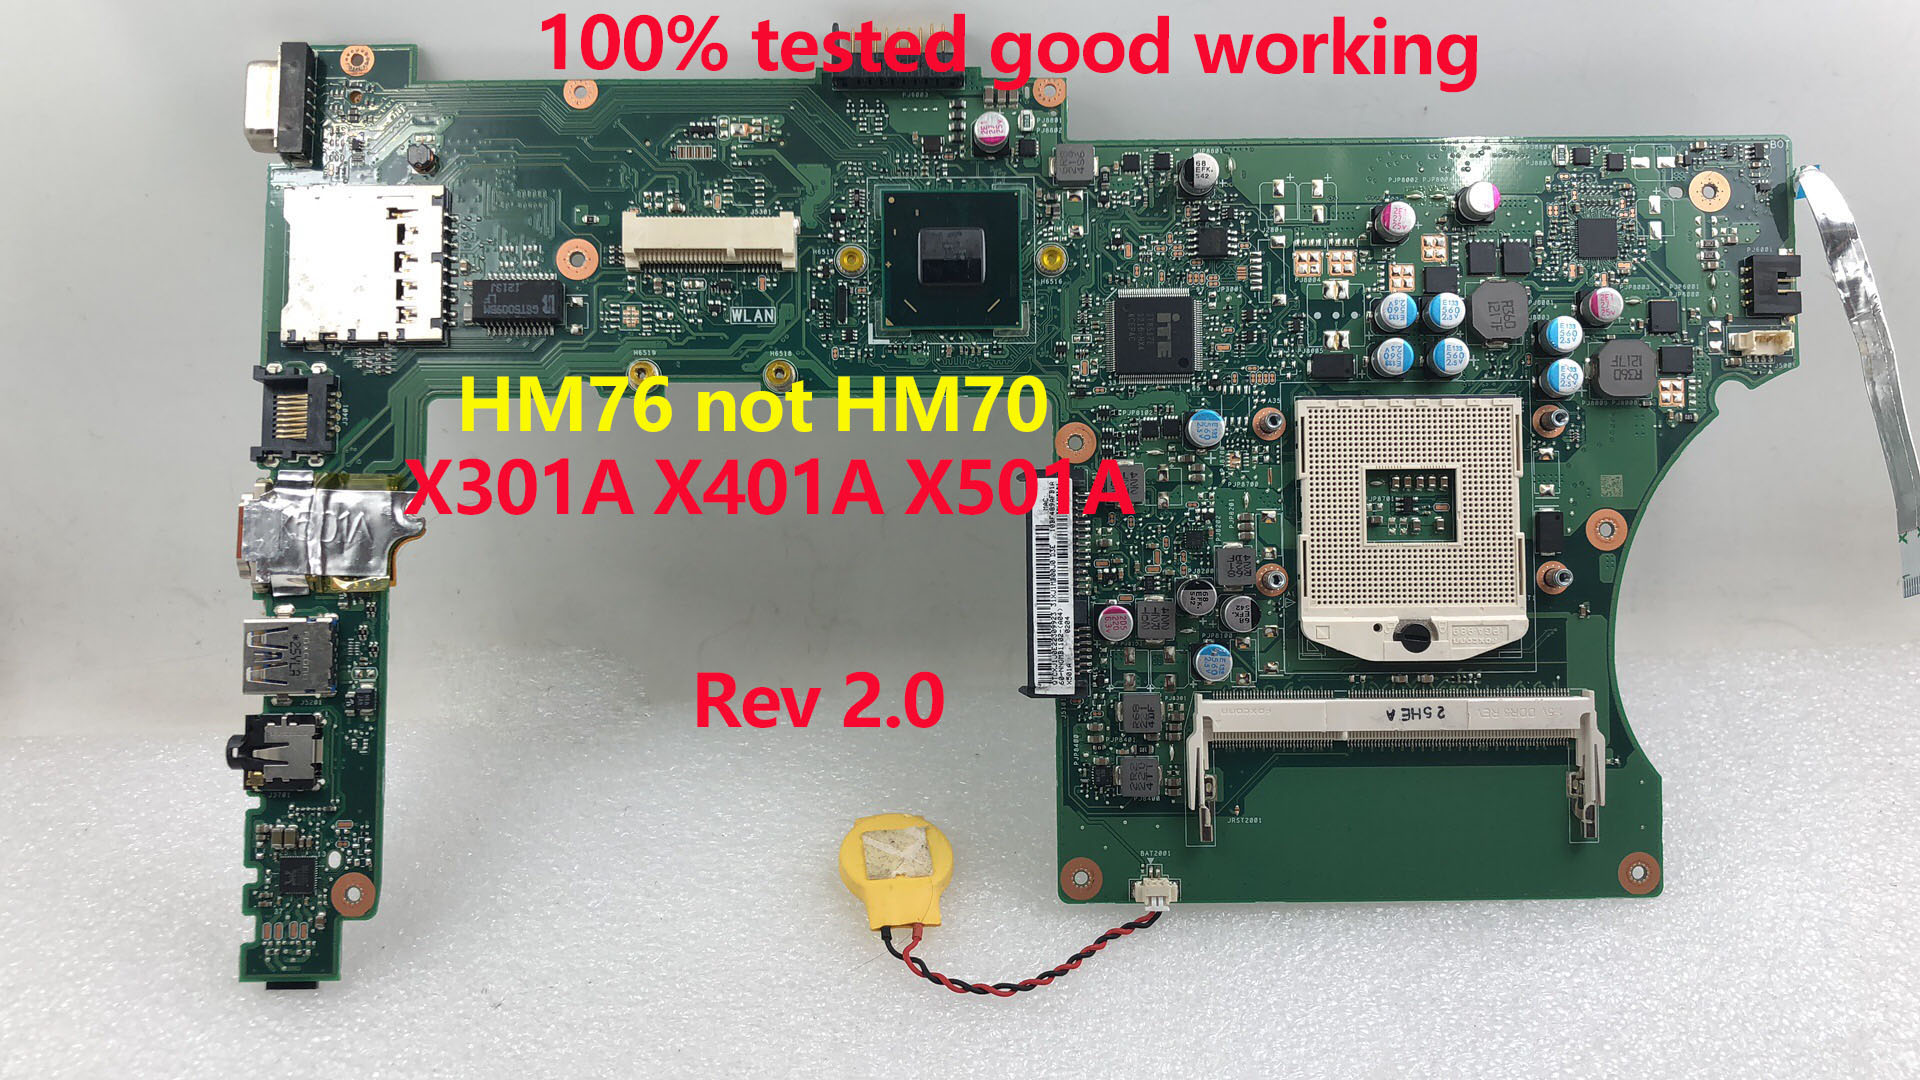 SHELI For ASUS X301A X401A X501A Laptop Motherboard X401A1 CPU SLJ8E HM76 Rev 2.0 Main Board Mainboard 100% Tested Ok